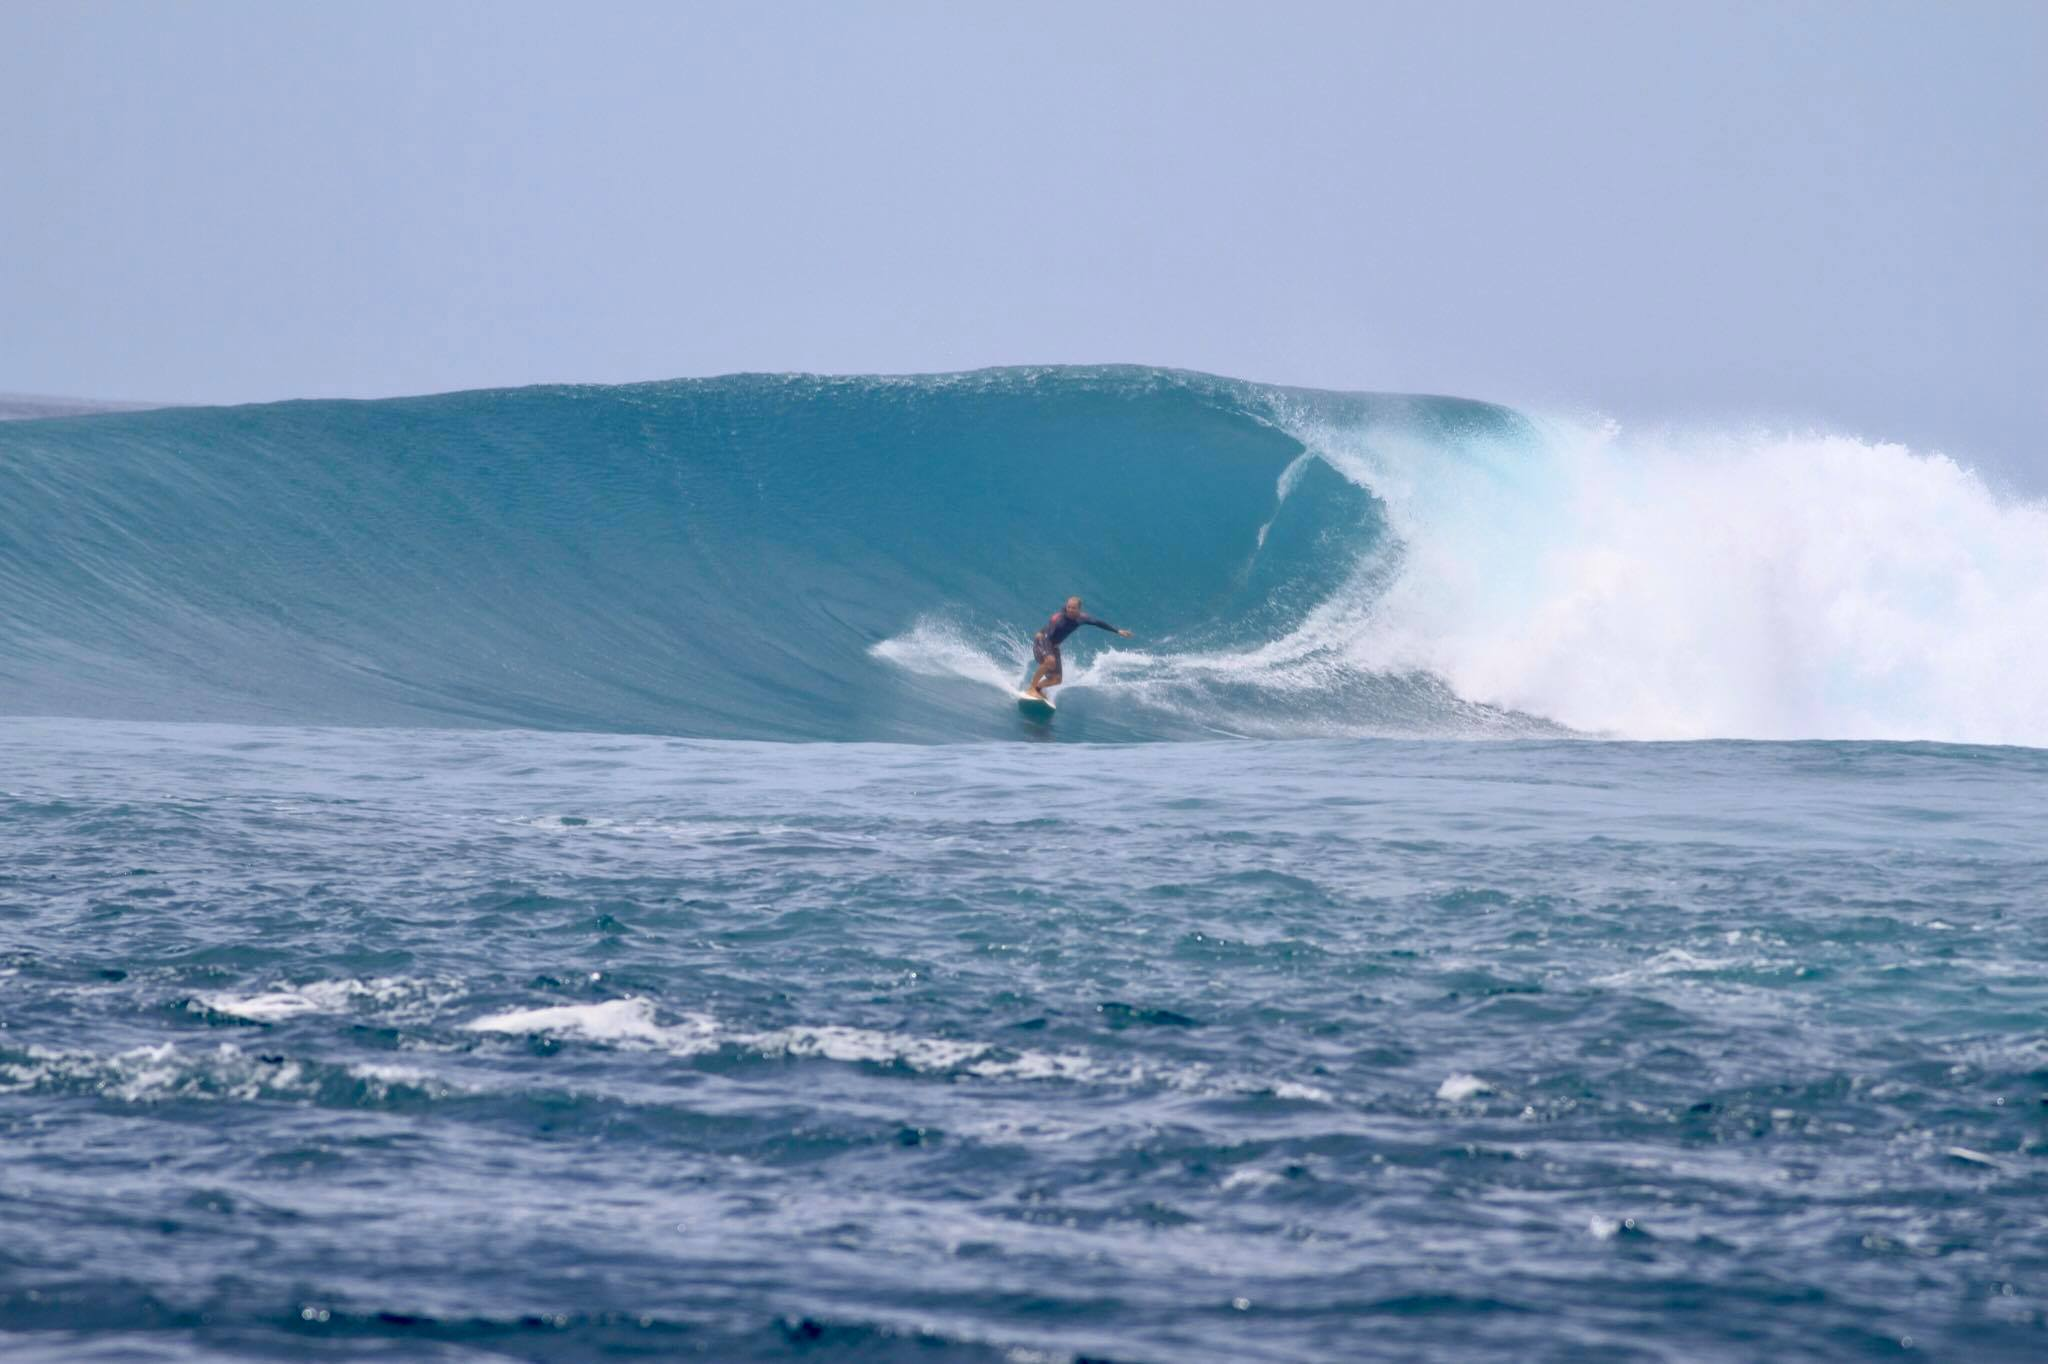 The end bowl at Kandooma on August 22.